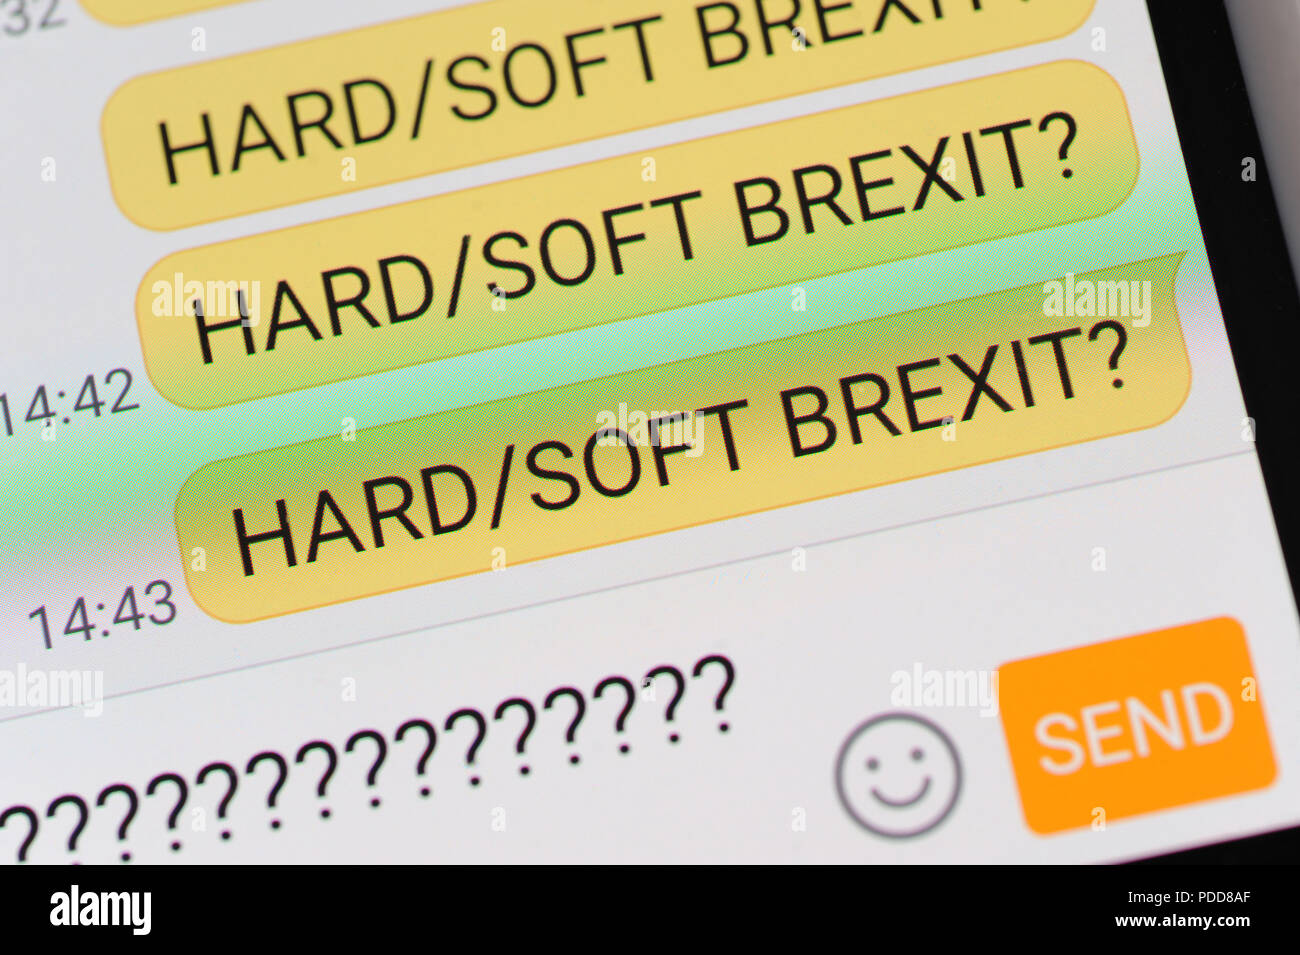 HARD SOFT BREXIT TEXT MESSAGE ON SMARTPHONE RE BREXIT DEAL TRADE UK ECONOMY NO DEAL NEGOTIATIONS - Stock Image